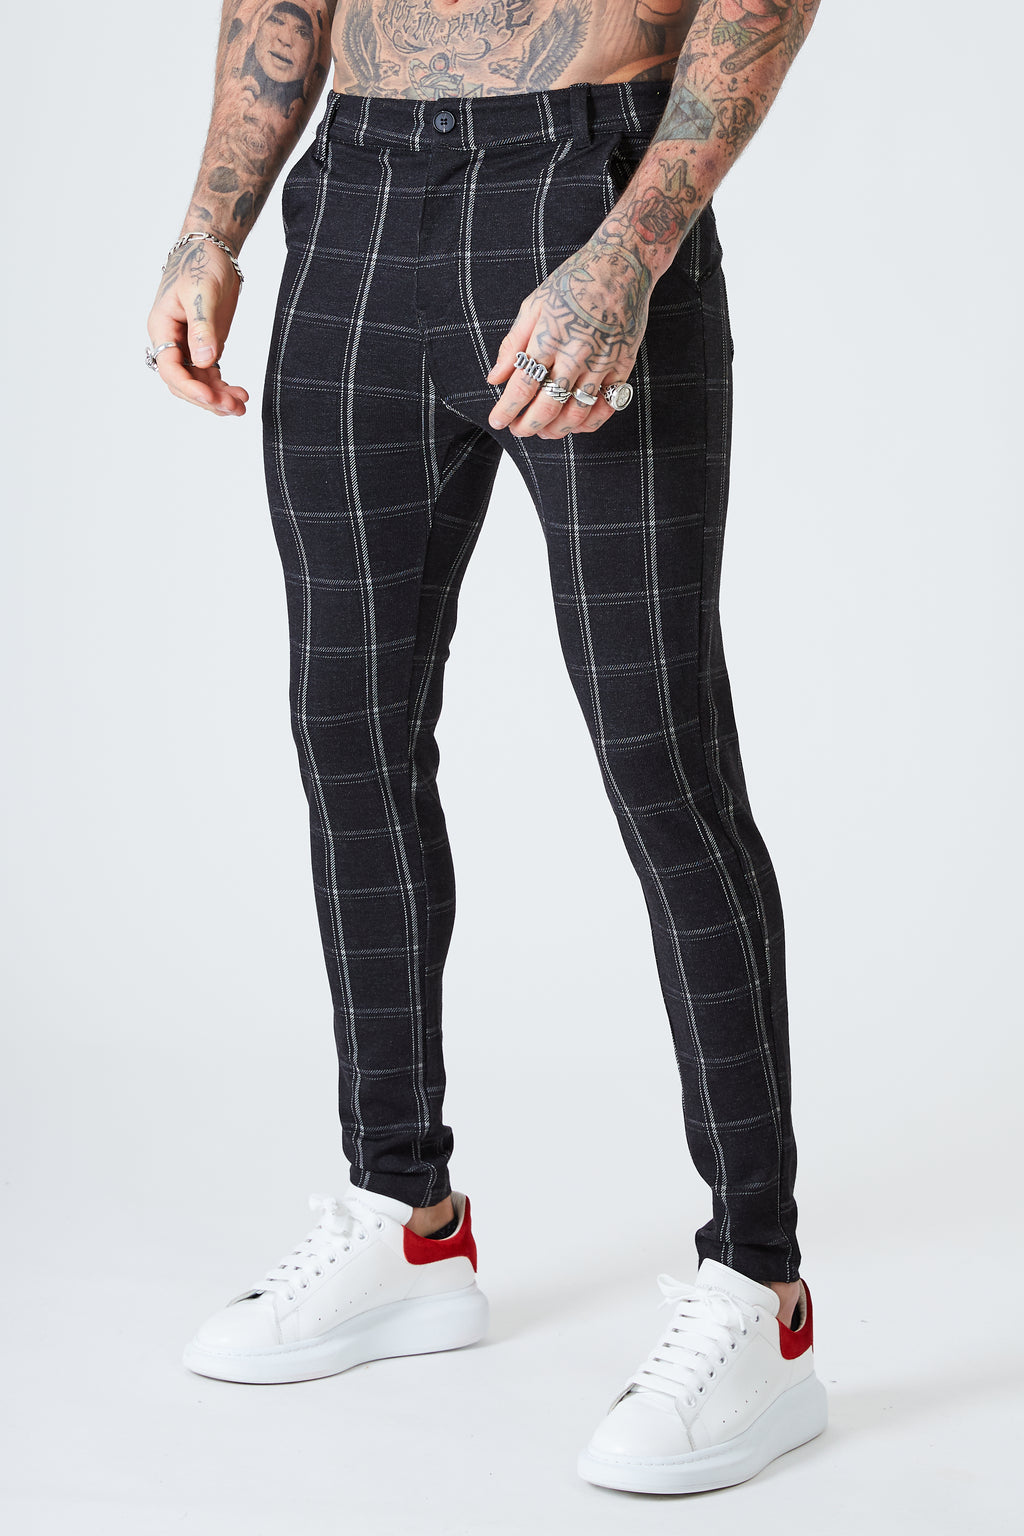 Luxe Skinny Check Trousers - Black - SVPPLY. STUDIOS